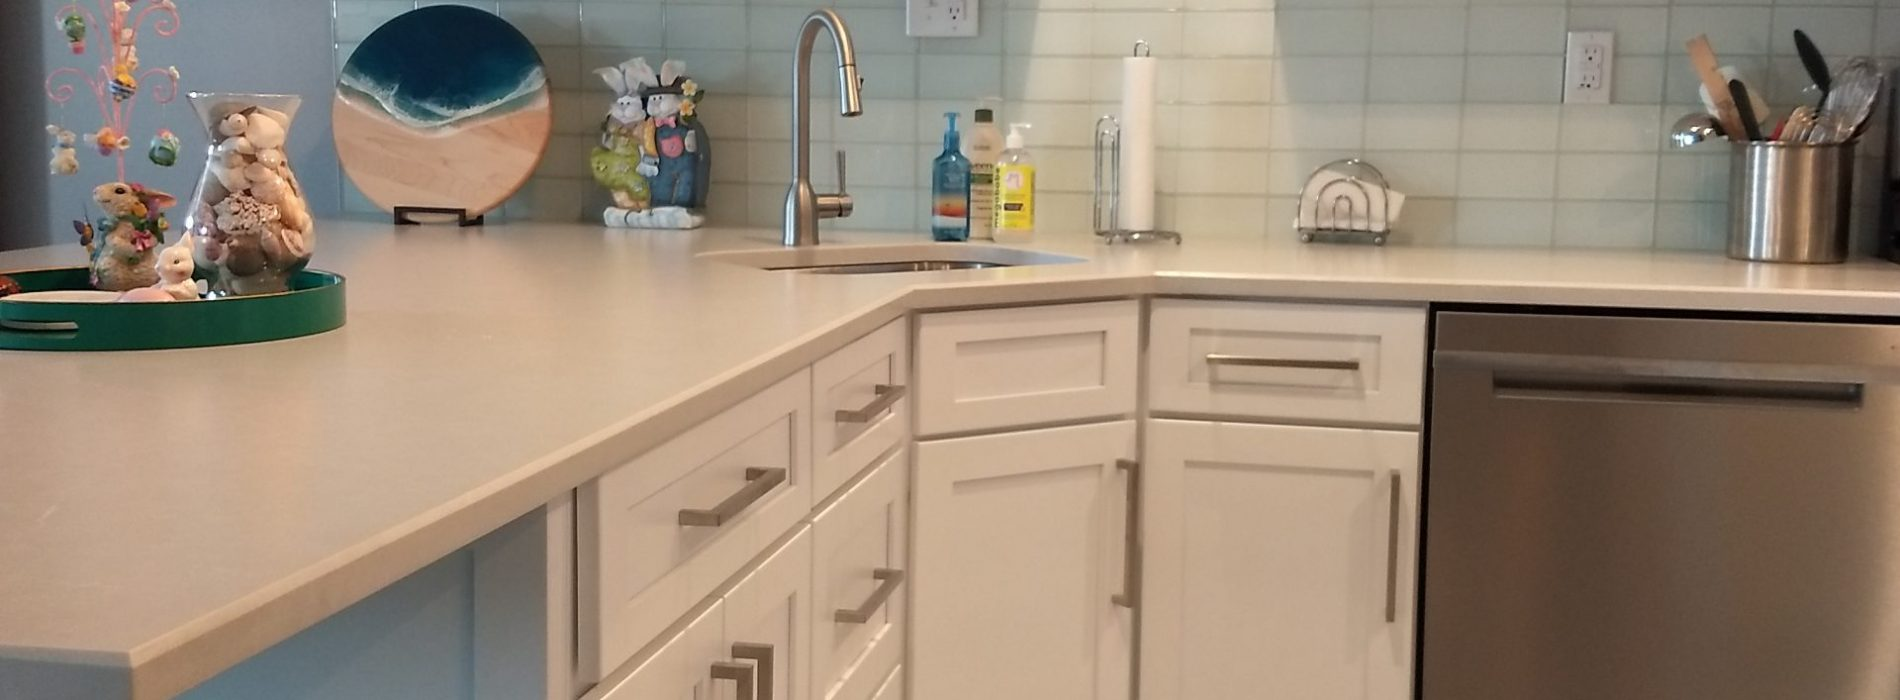 renovated kitchen cabinets and decorative shelving